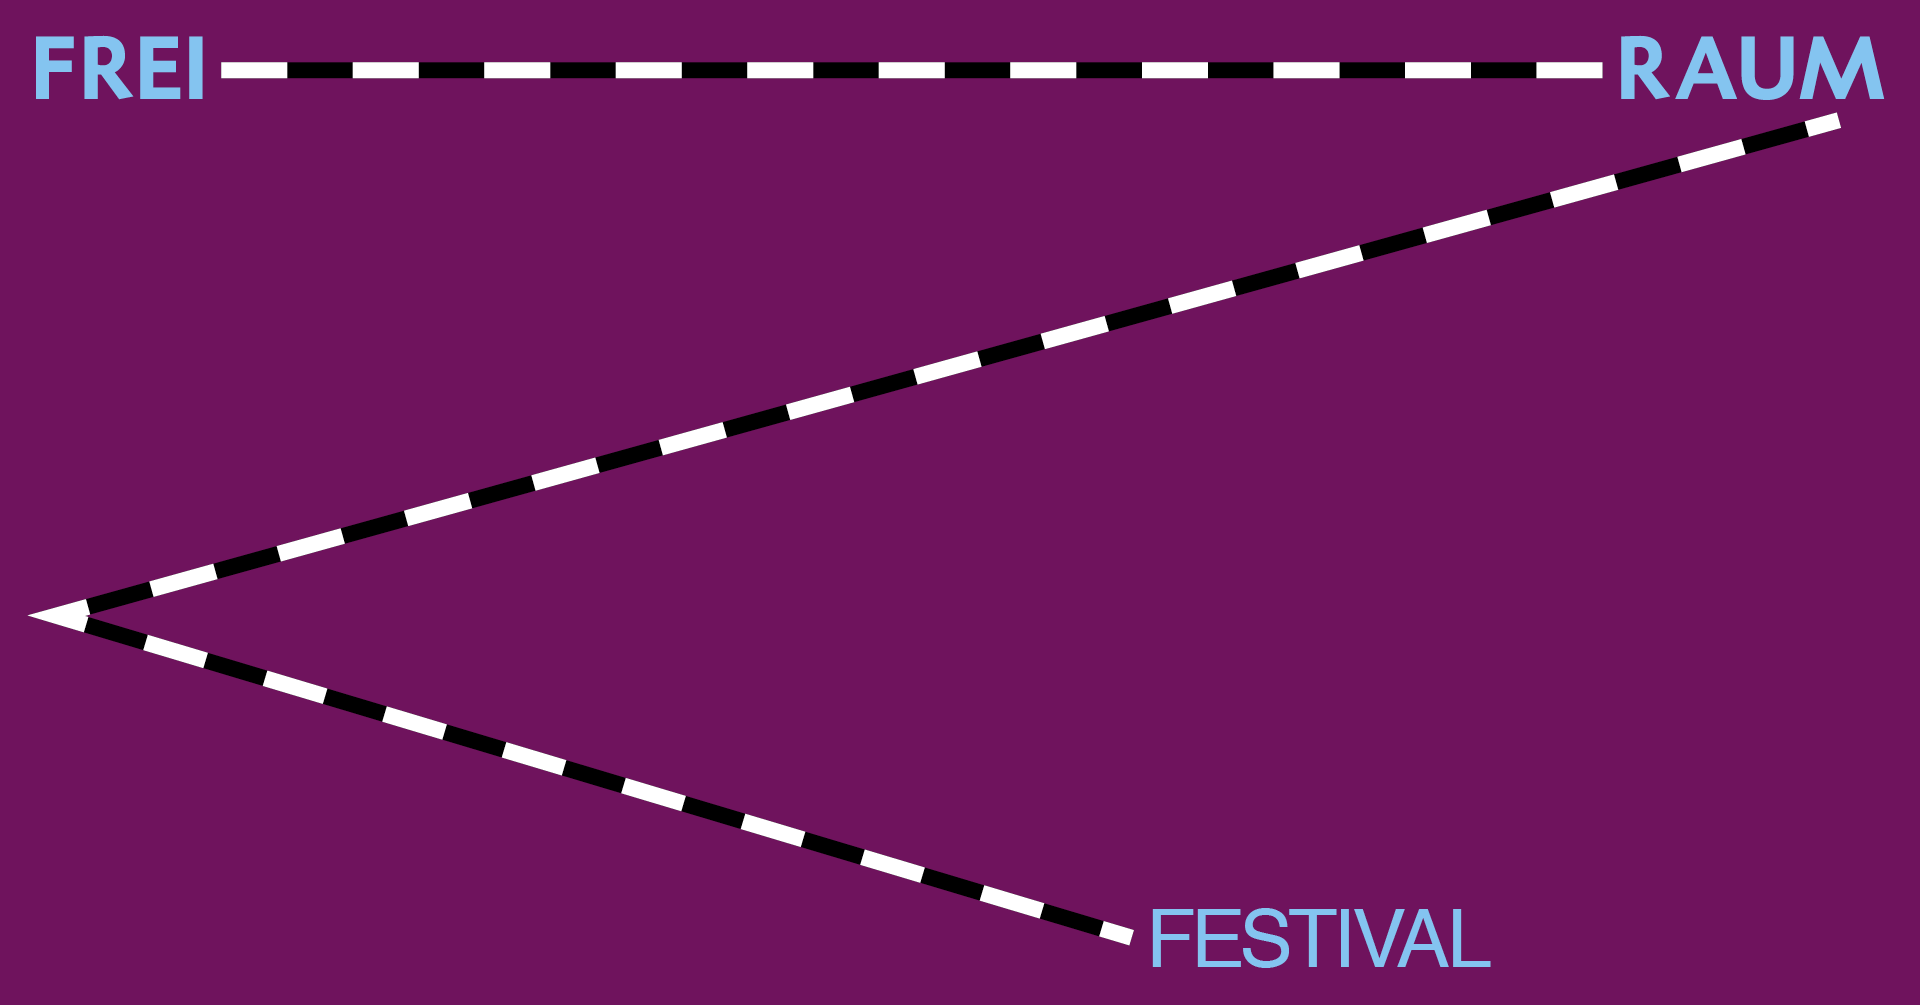 The Logo of Freiraum Festival 2020